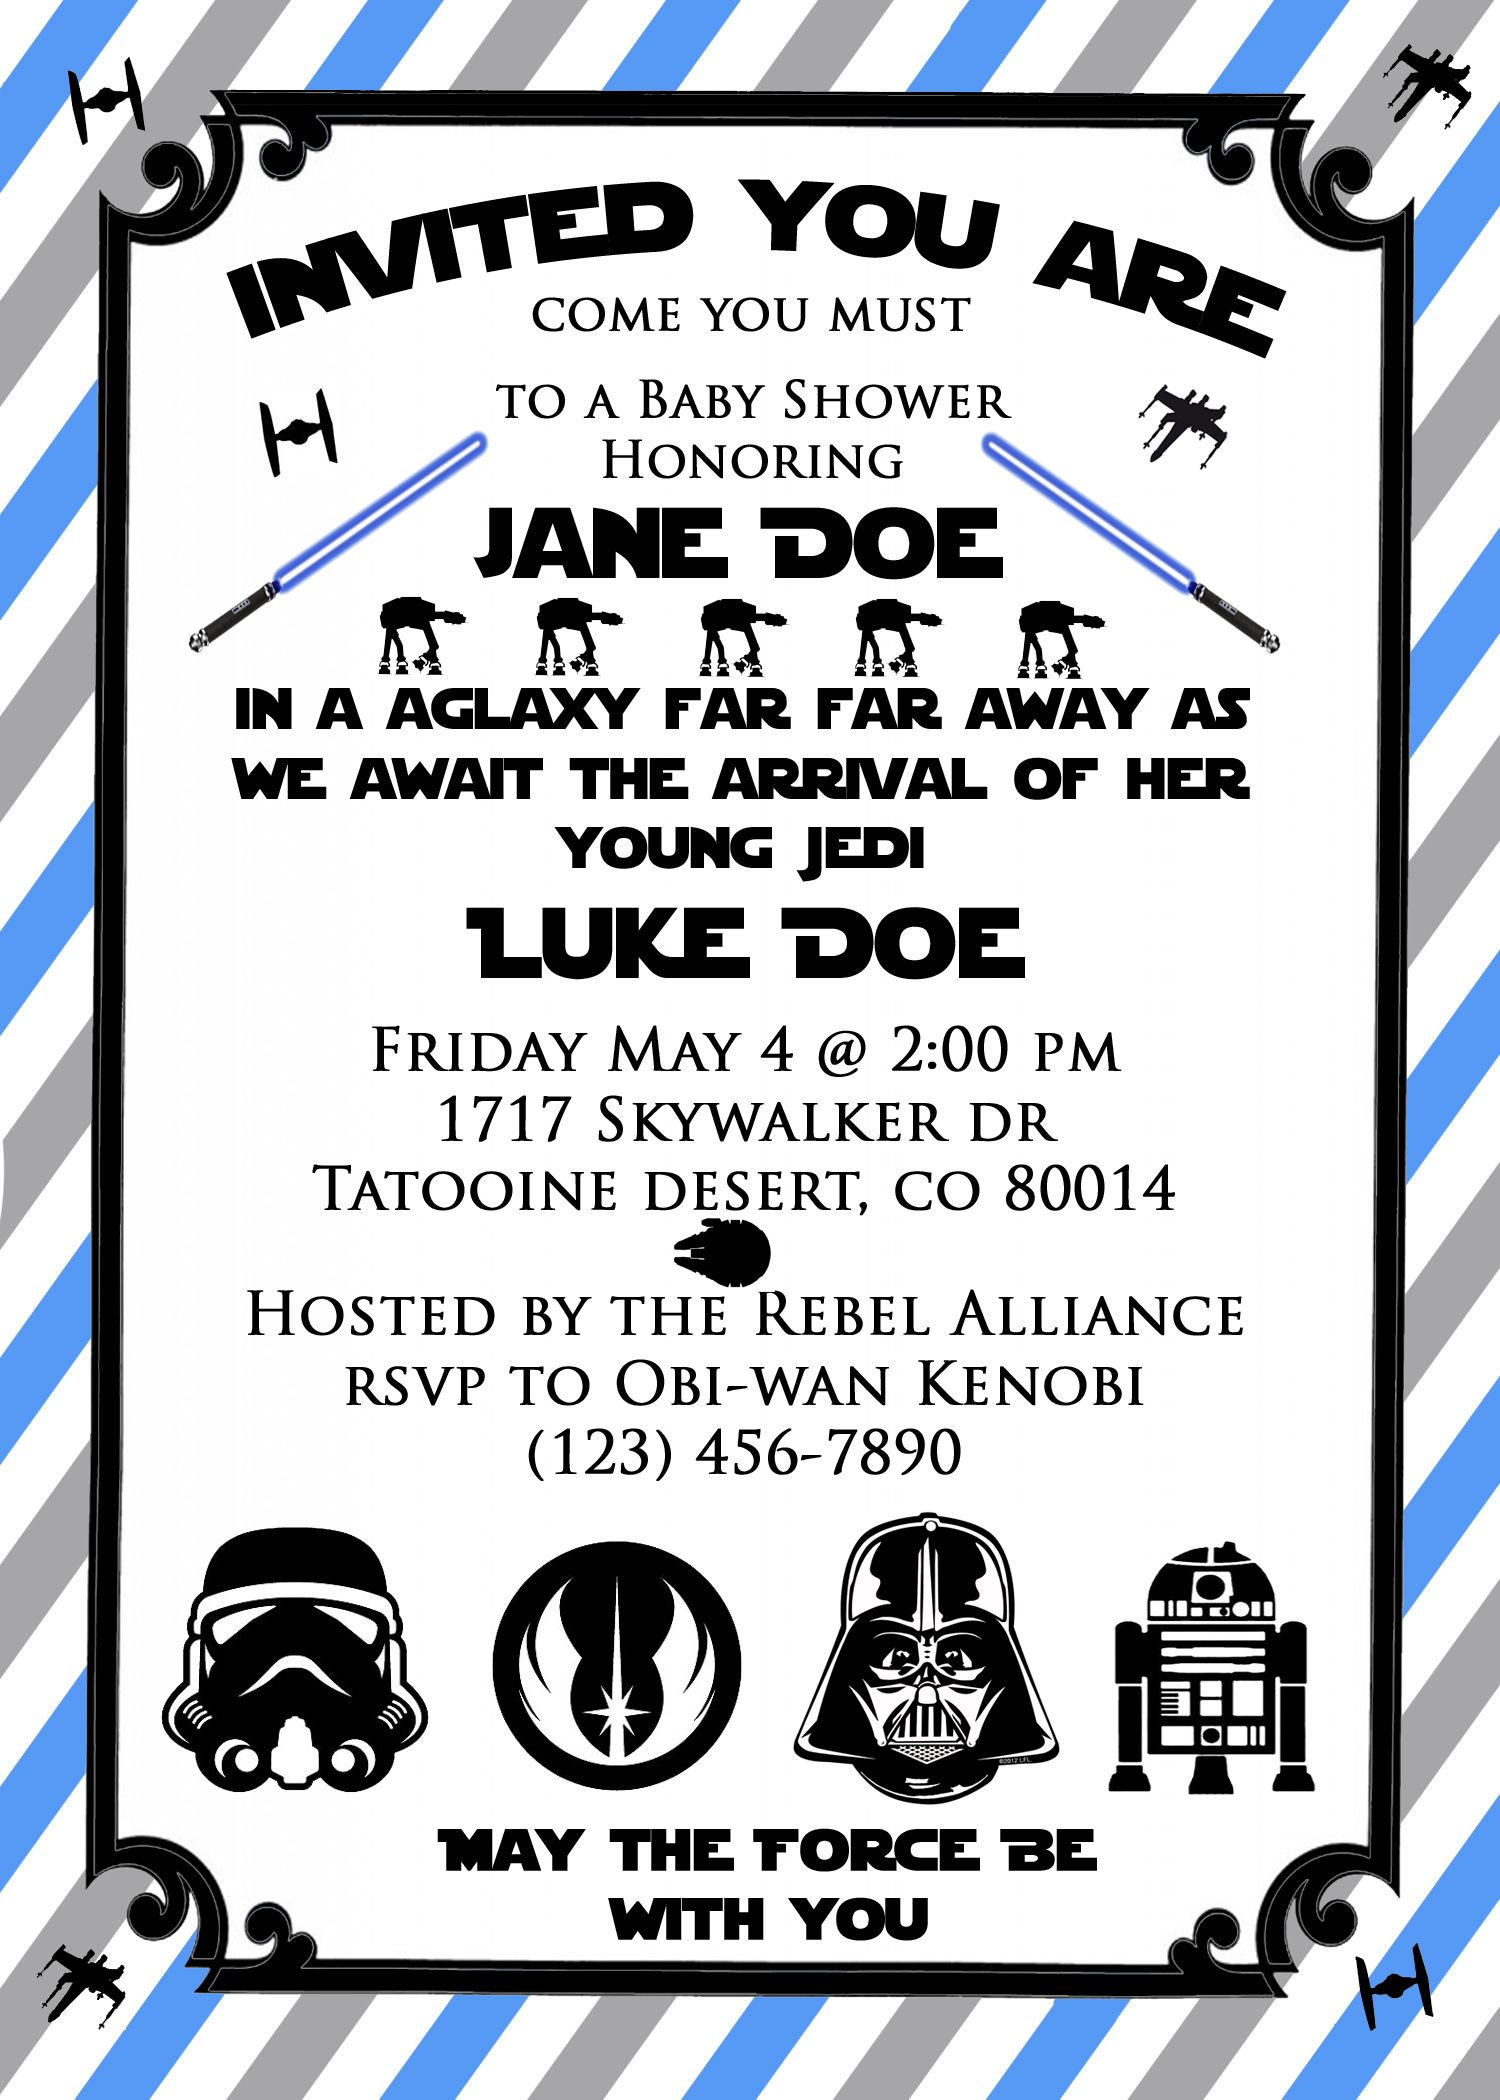 Star Wars Baby Shower Invite! So Cute For A Star Wars Themed Baby - Free Printable Star Wars Baby Shower Invites